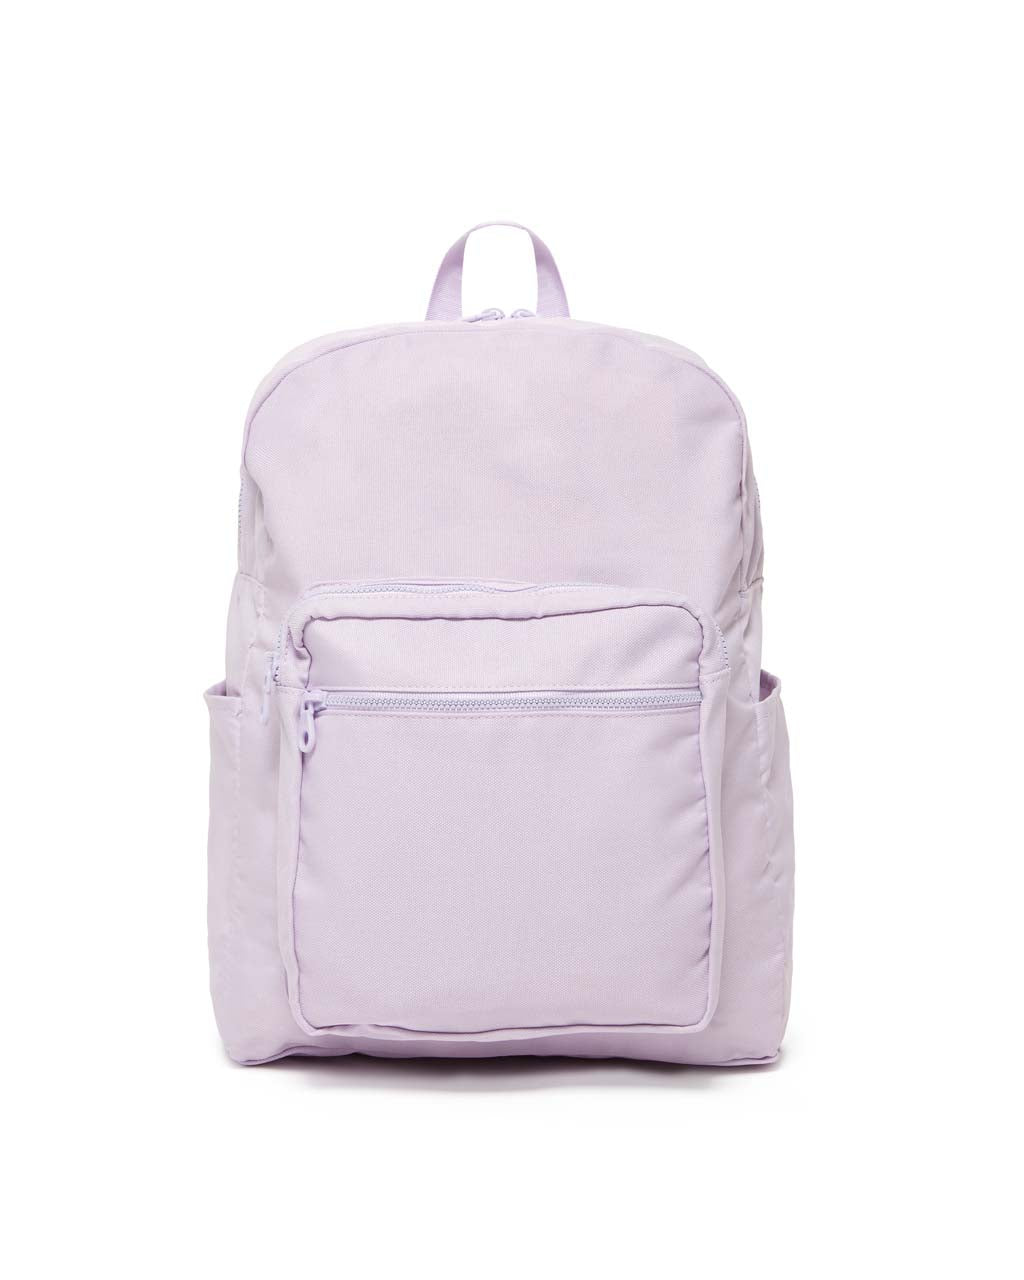 This Go-go Backpack comes in a soft lilac purple.